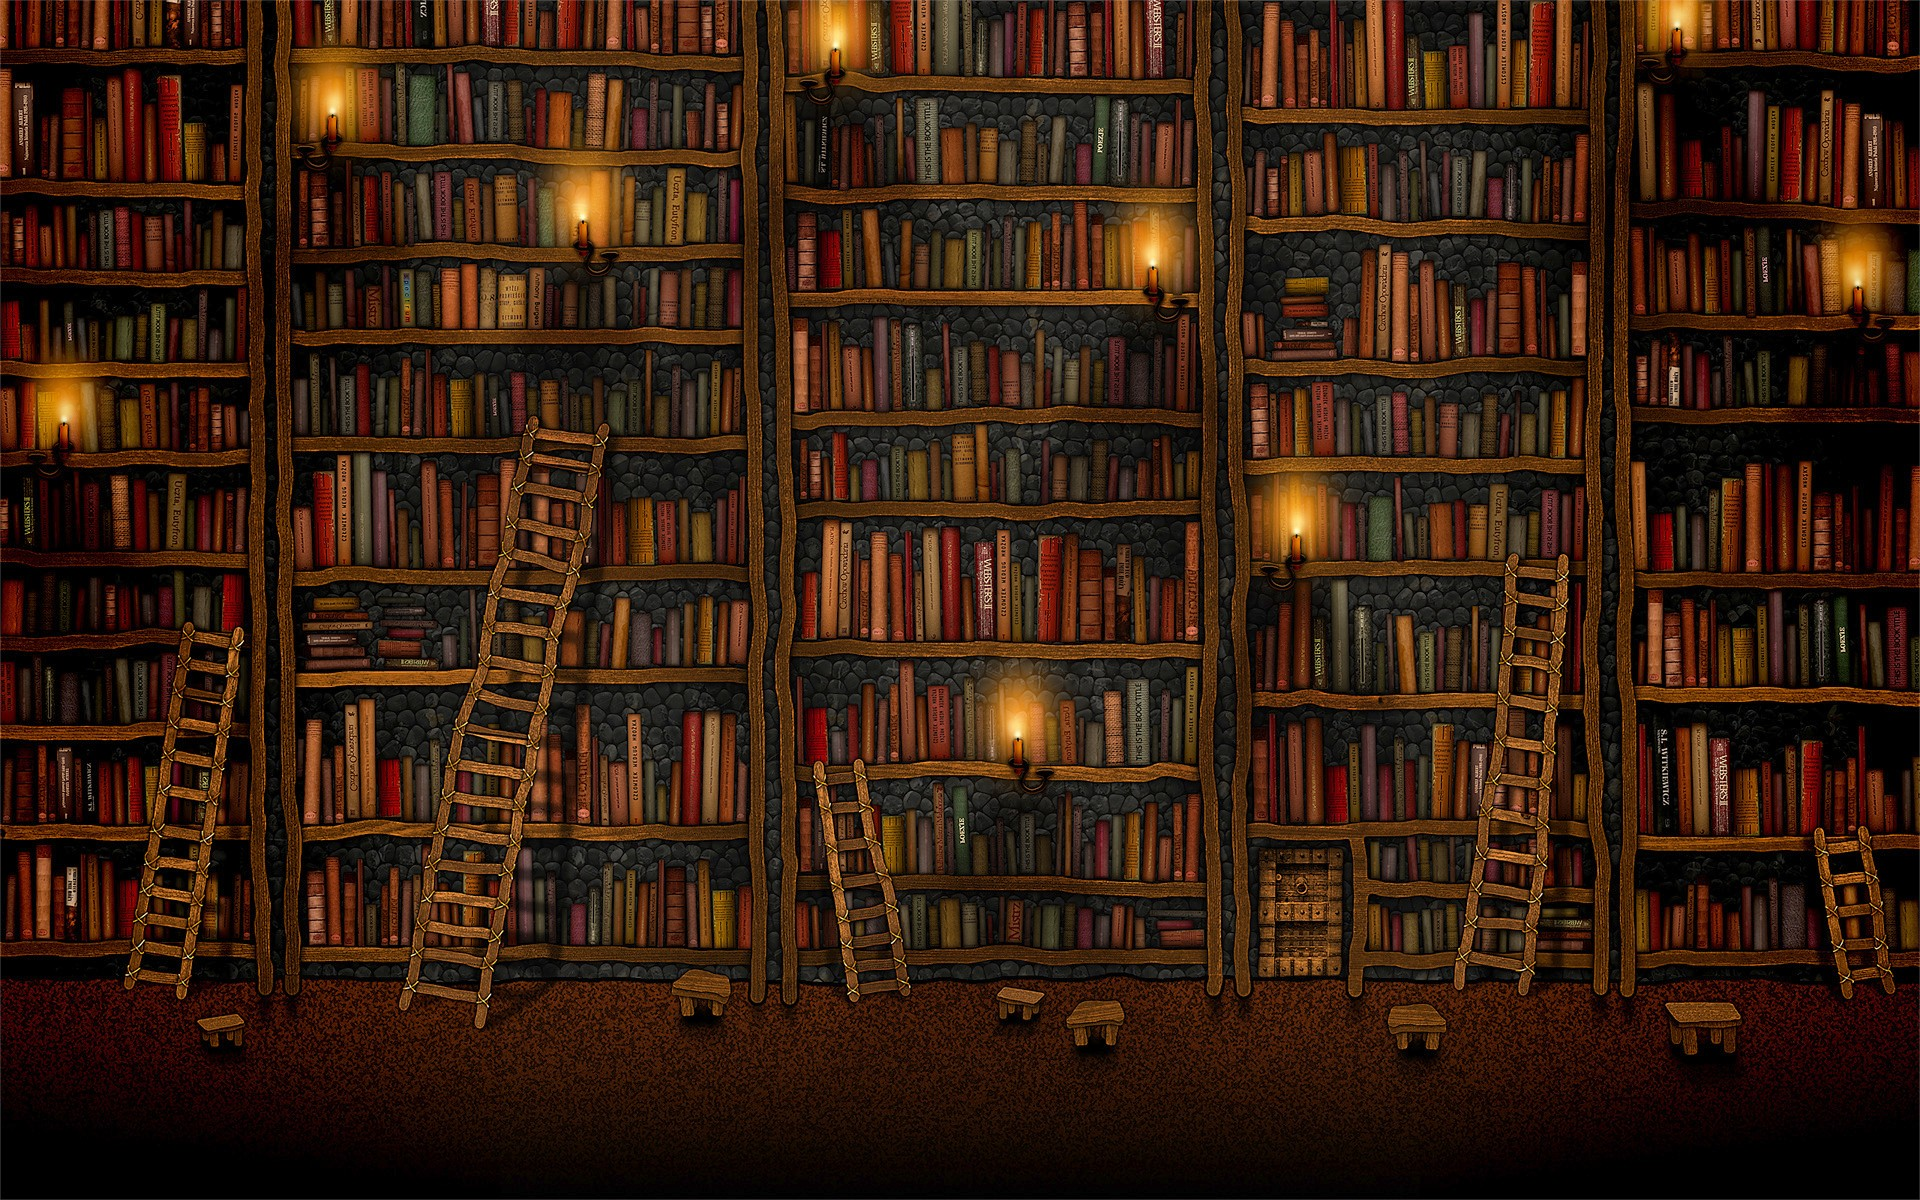 Libraries Book Desktop Backgrounds 1920 x 1200